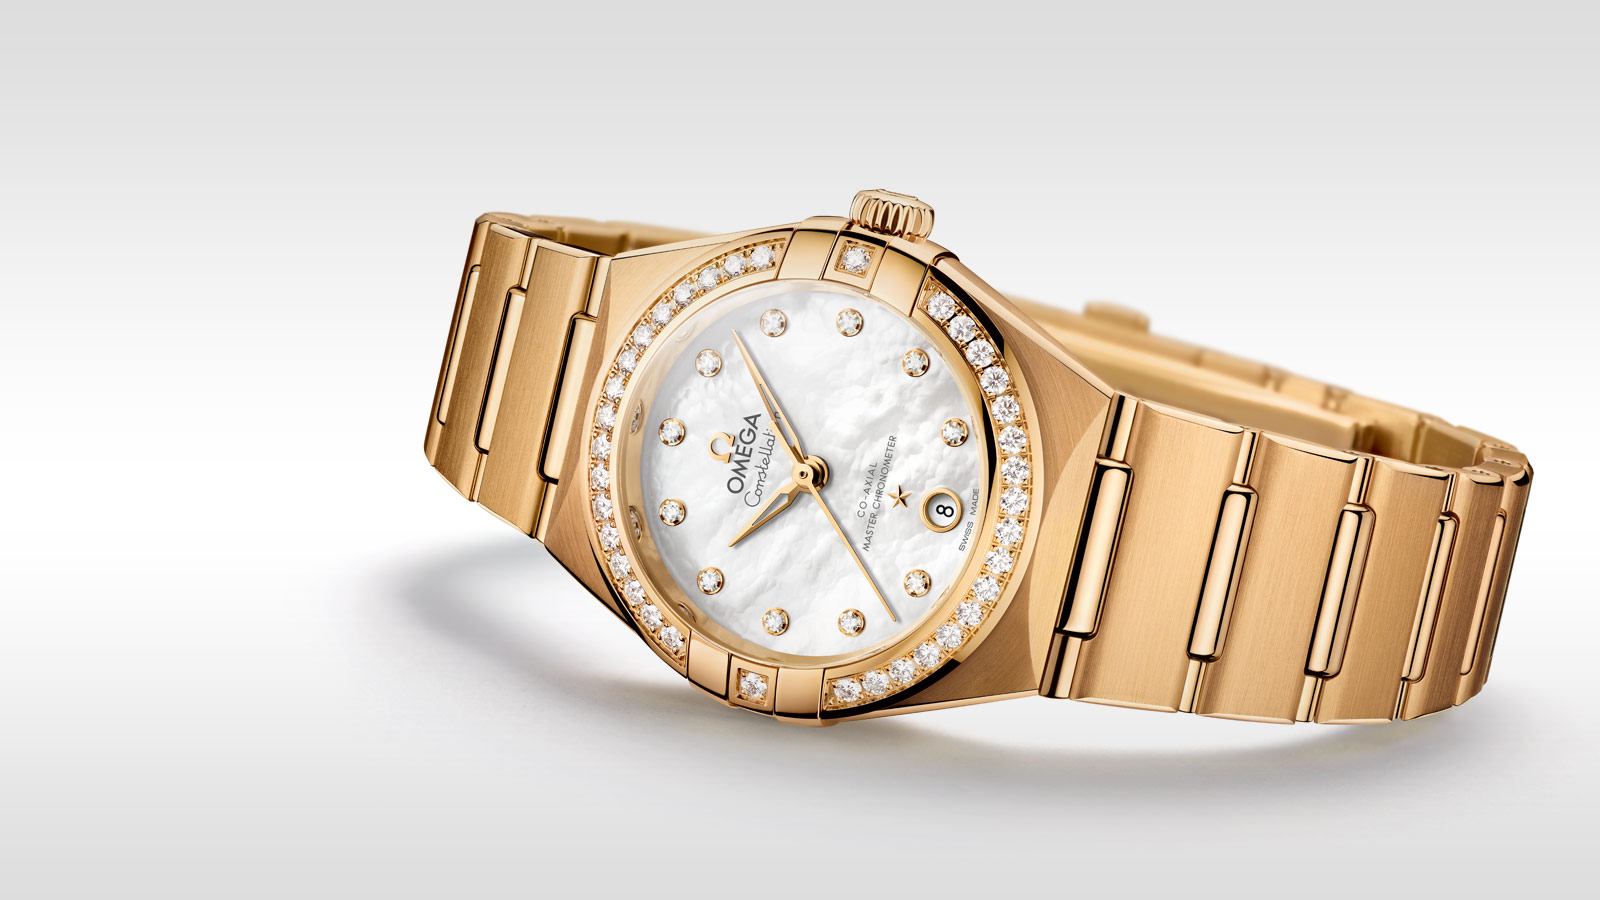 Constellation Constellation Constellation OMEGA Co‑Axial Master Chronometer 29 mm - 131.55.29.20.55.002 - View 1